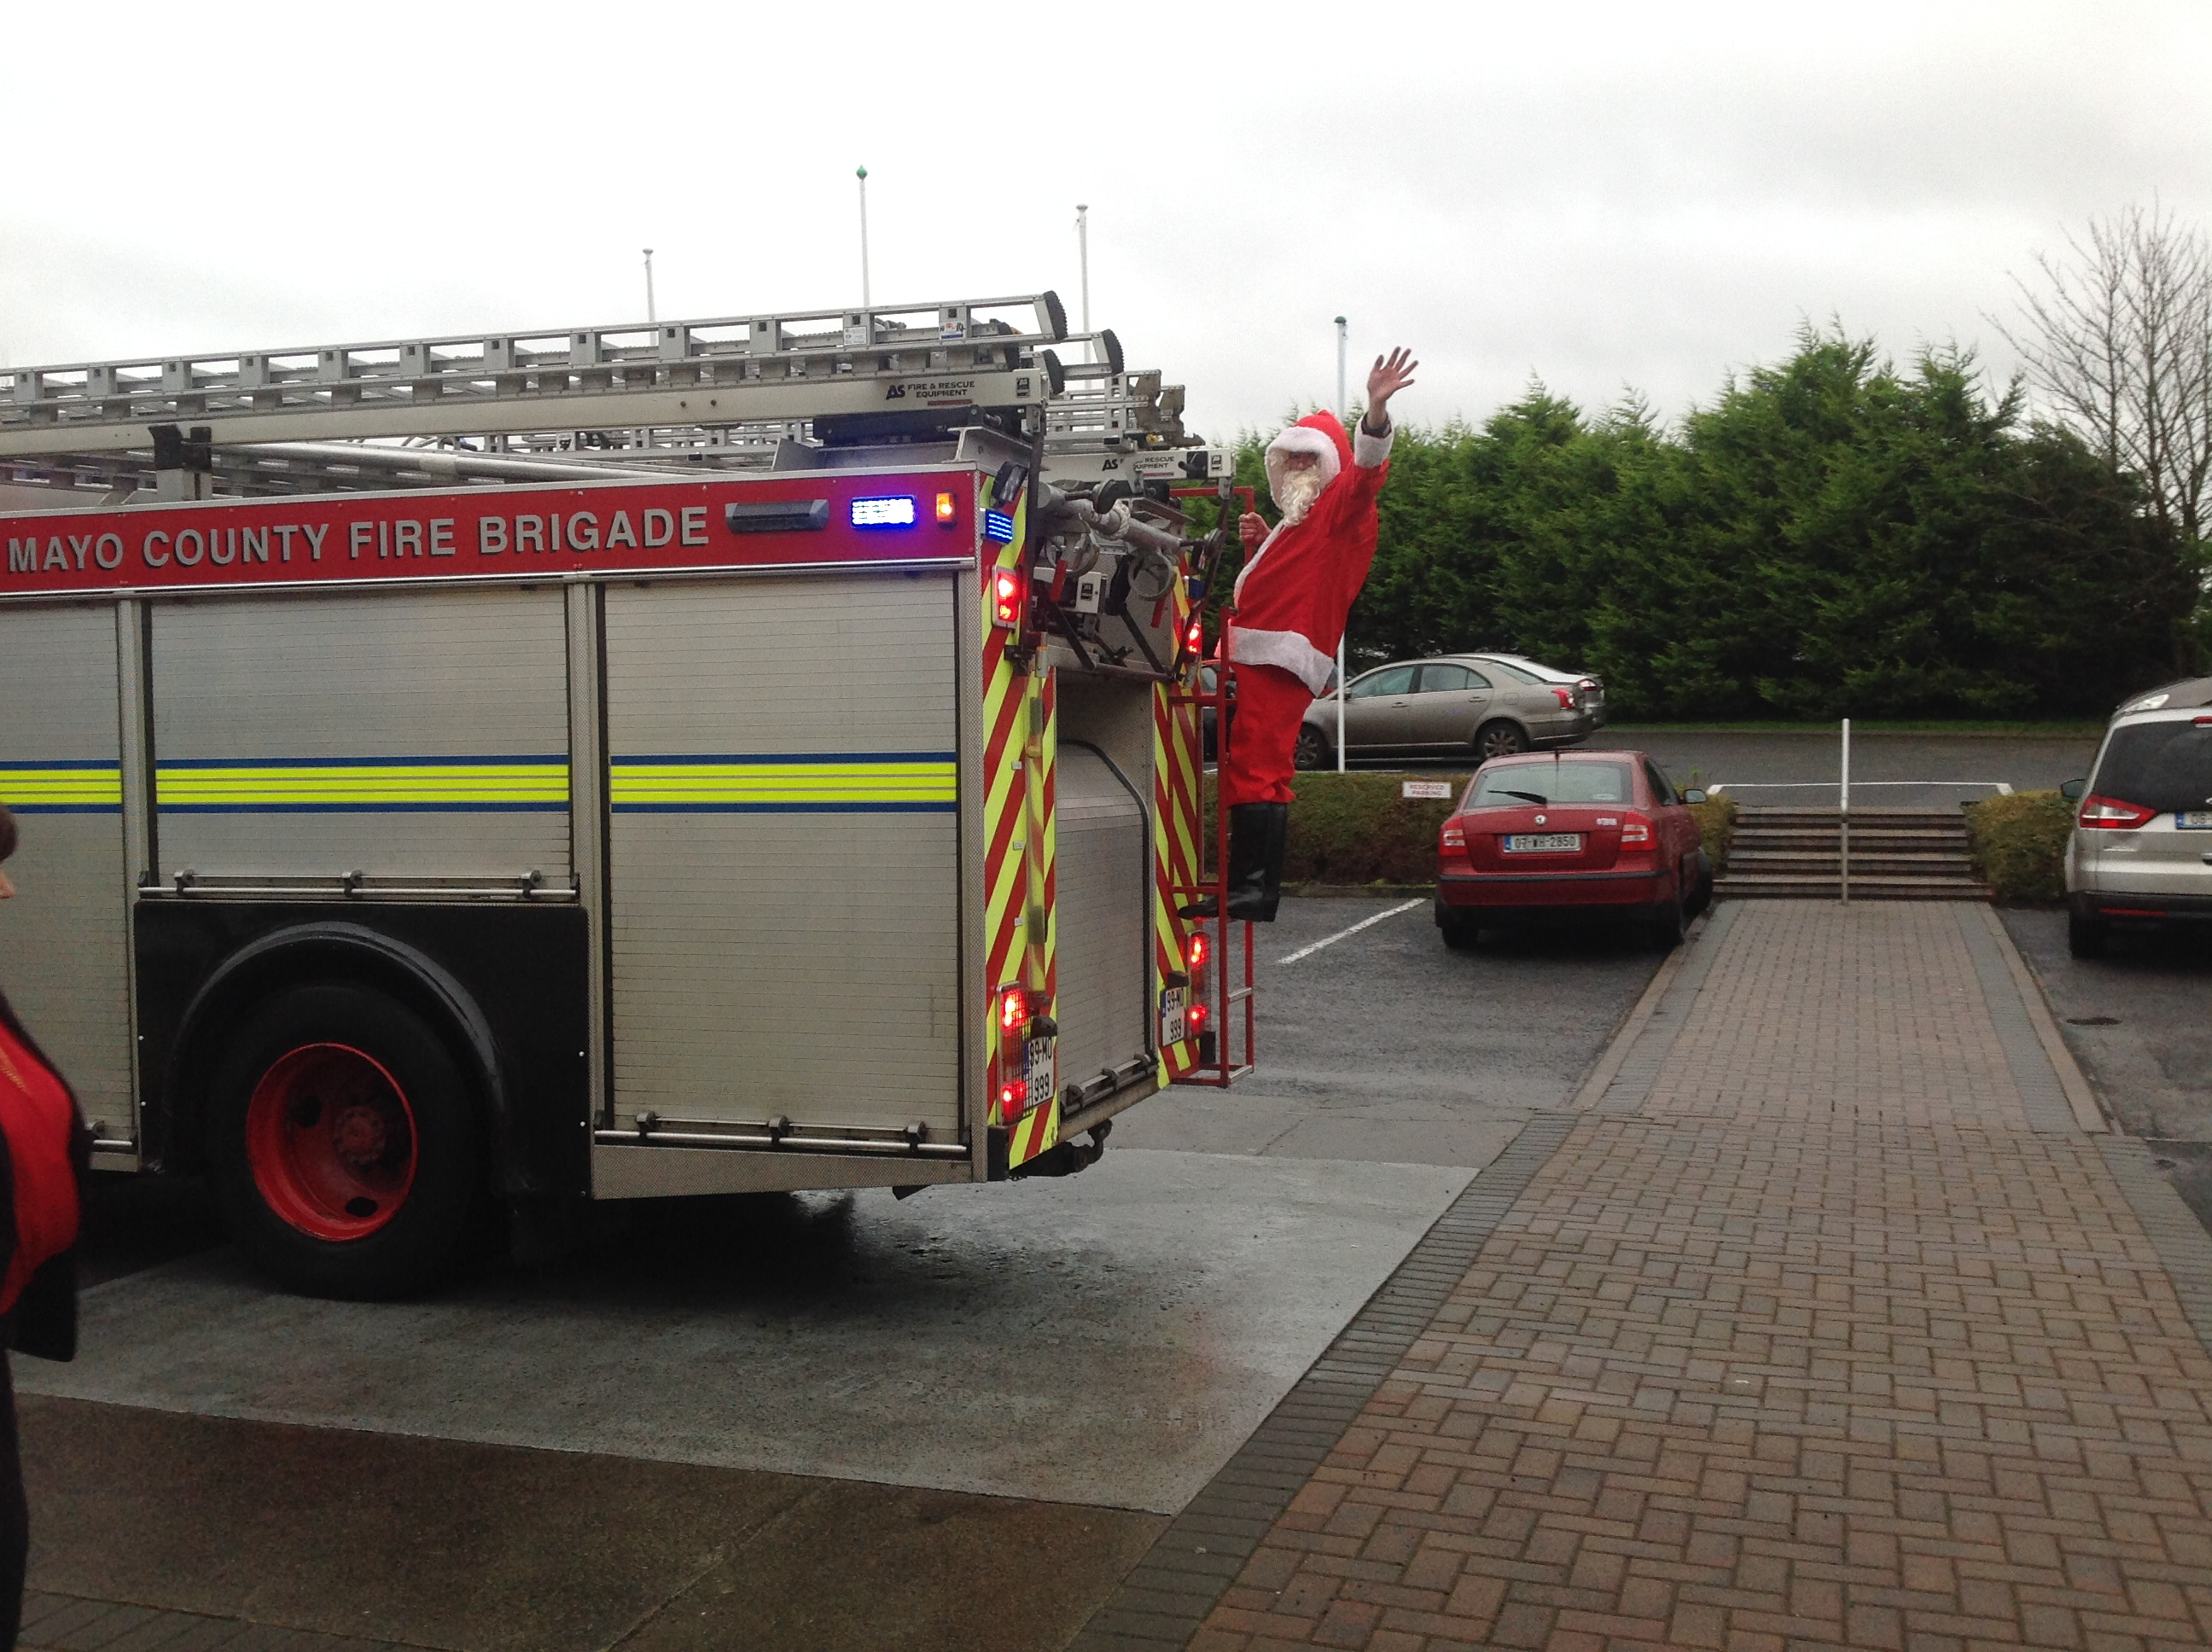 Santa arrives with the help of the local Fire brigade